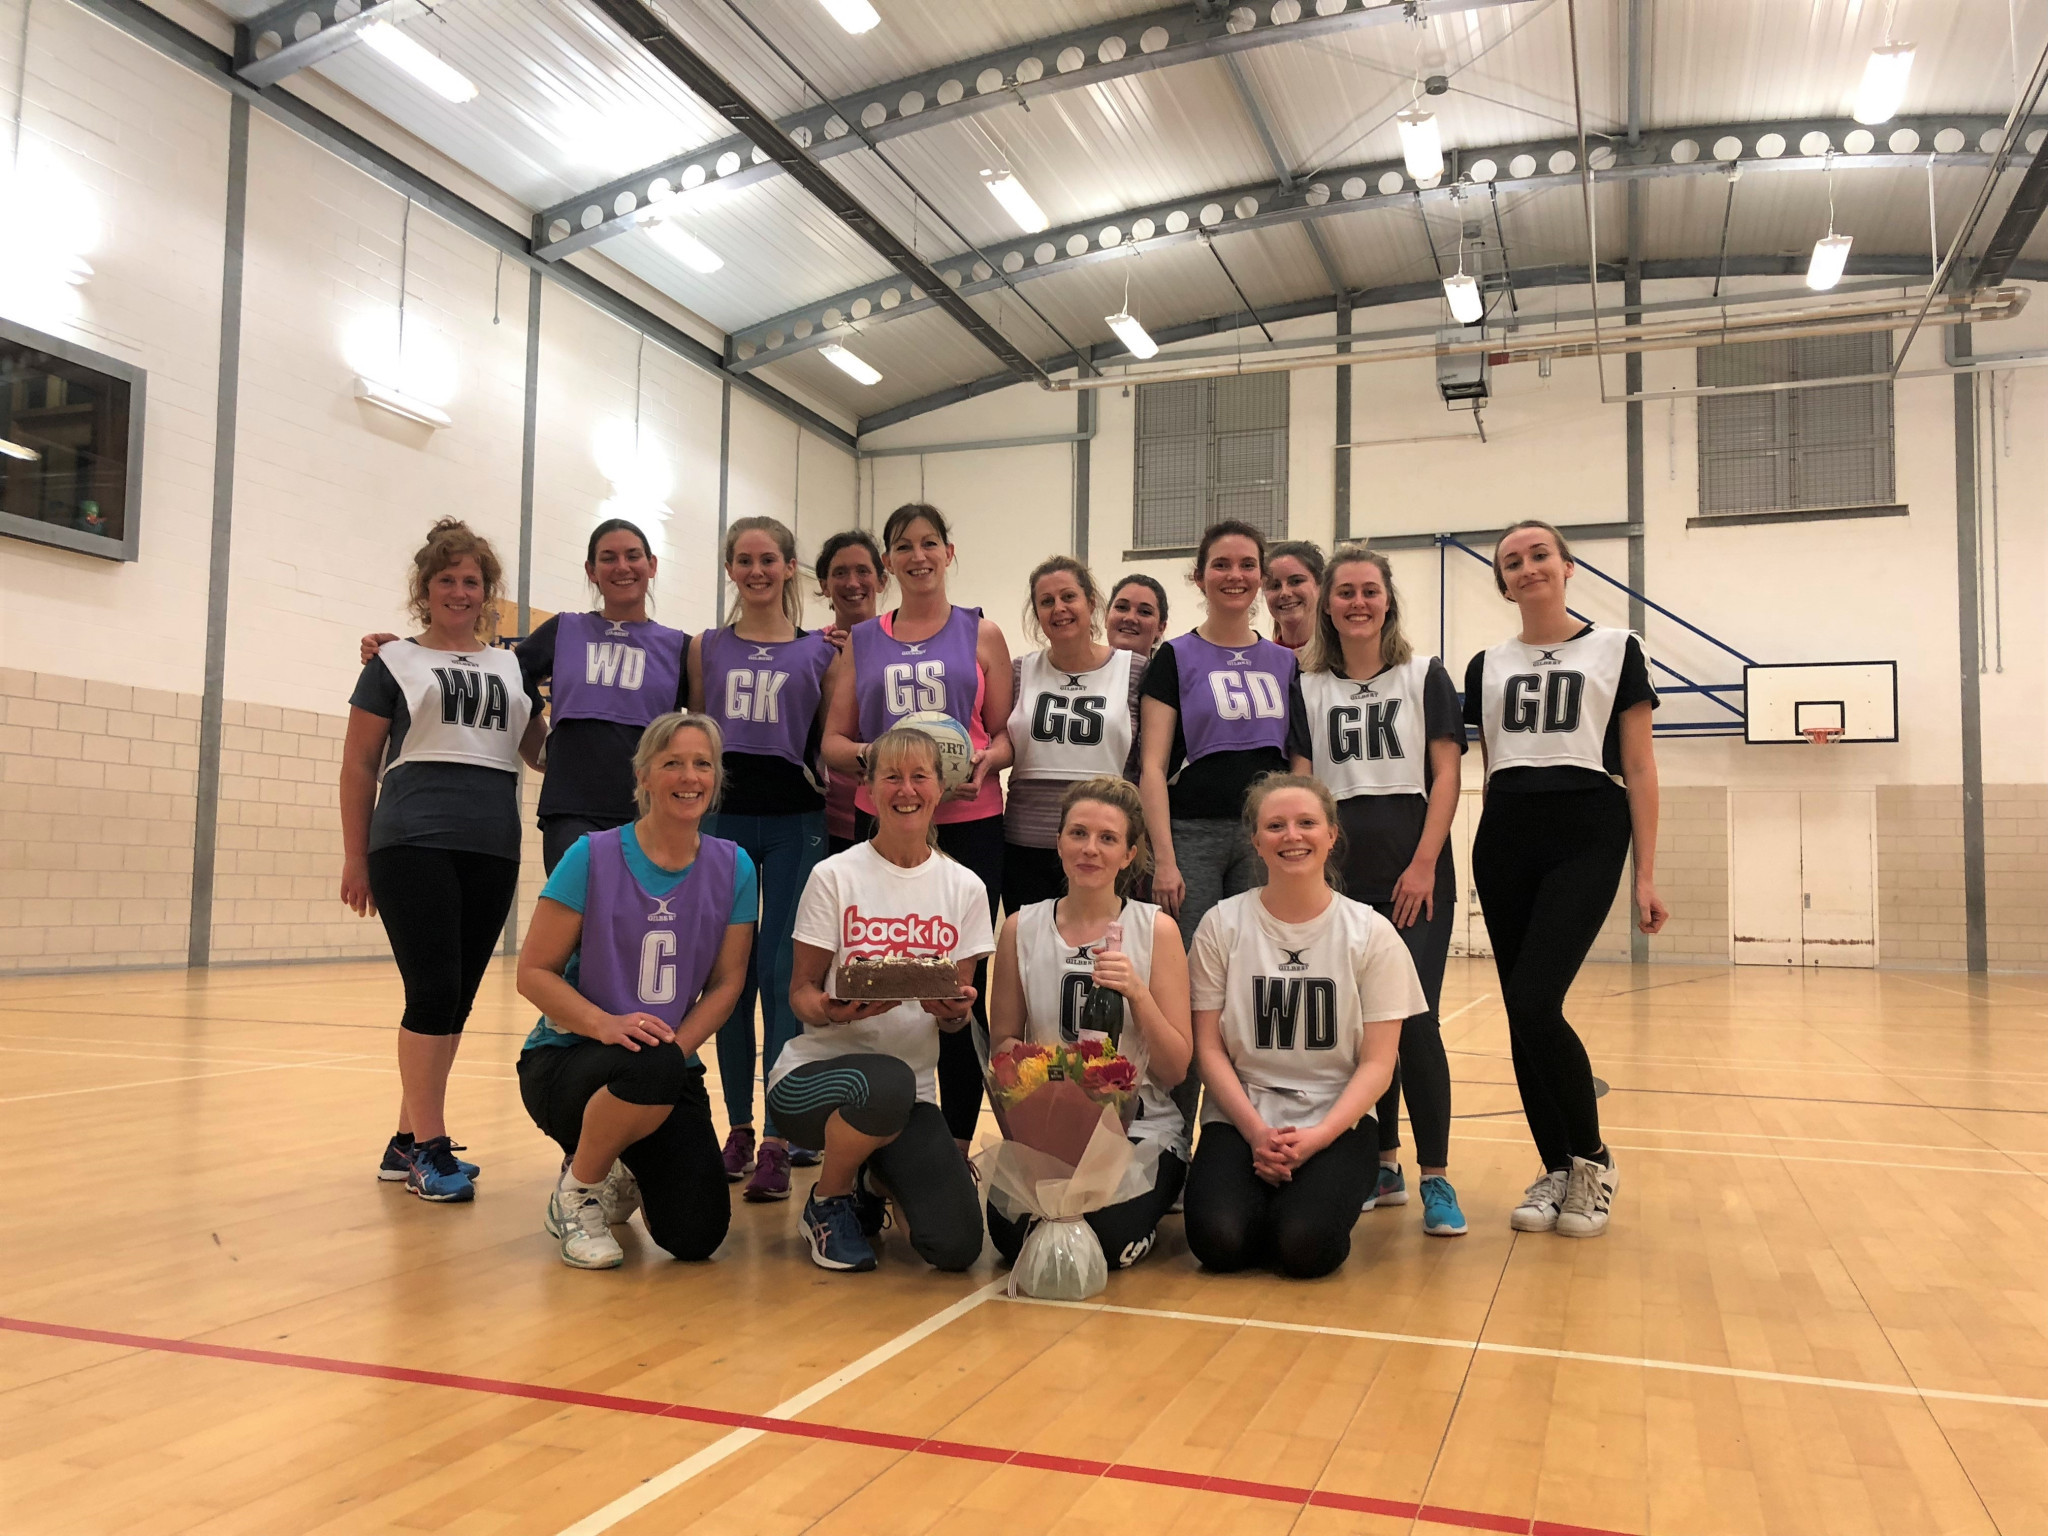 England Netball's flagship participation programme has reached a major milestone with a 100,000th person having signed up ©England Netball